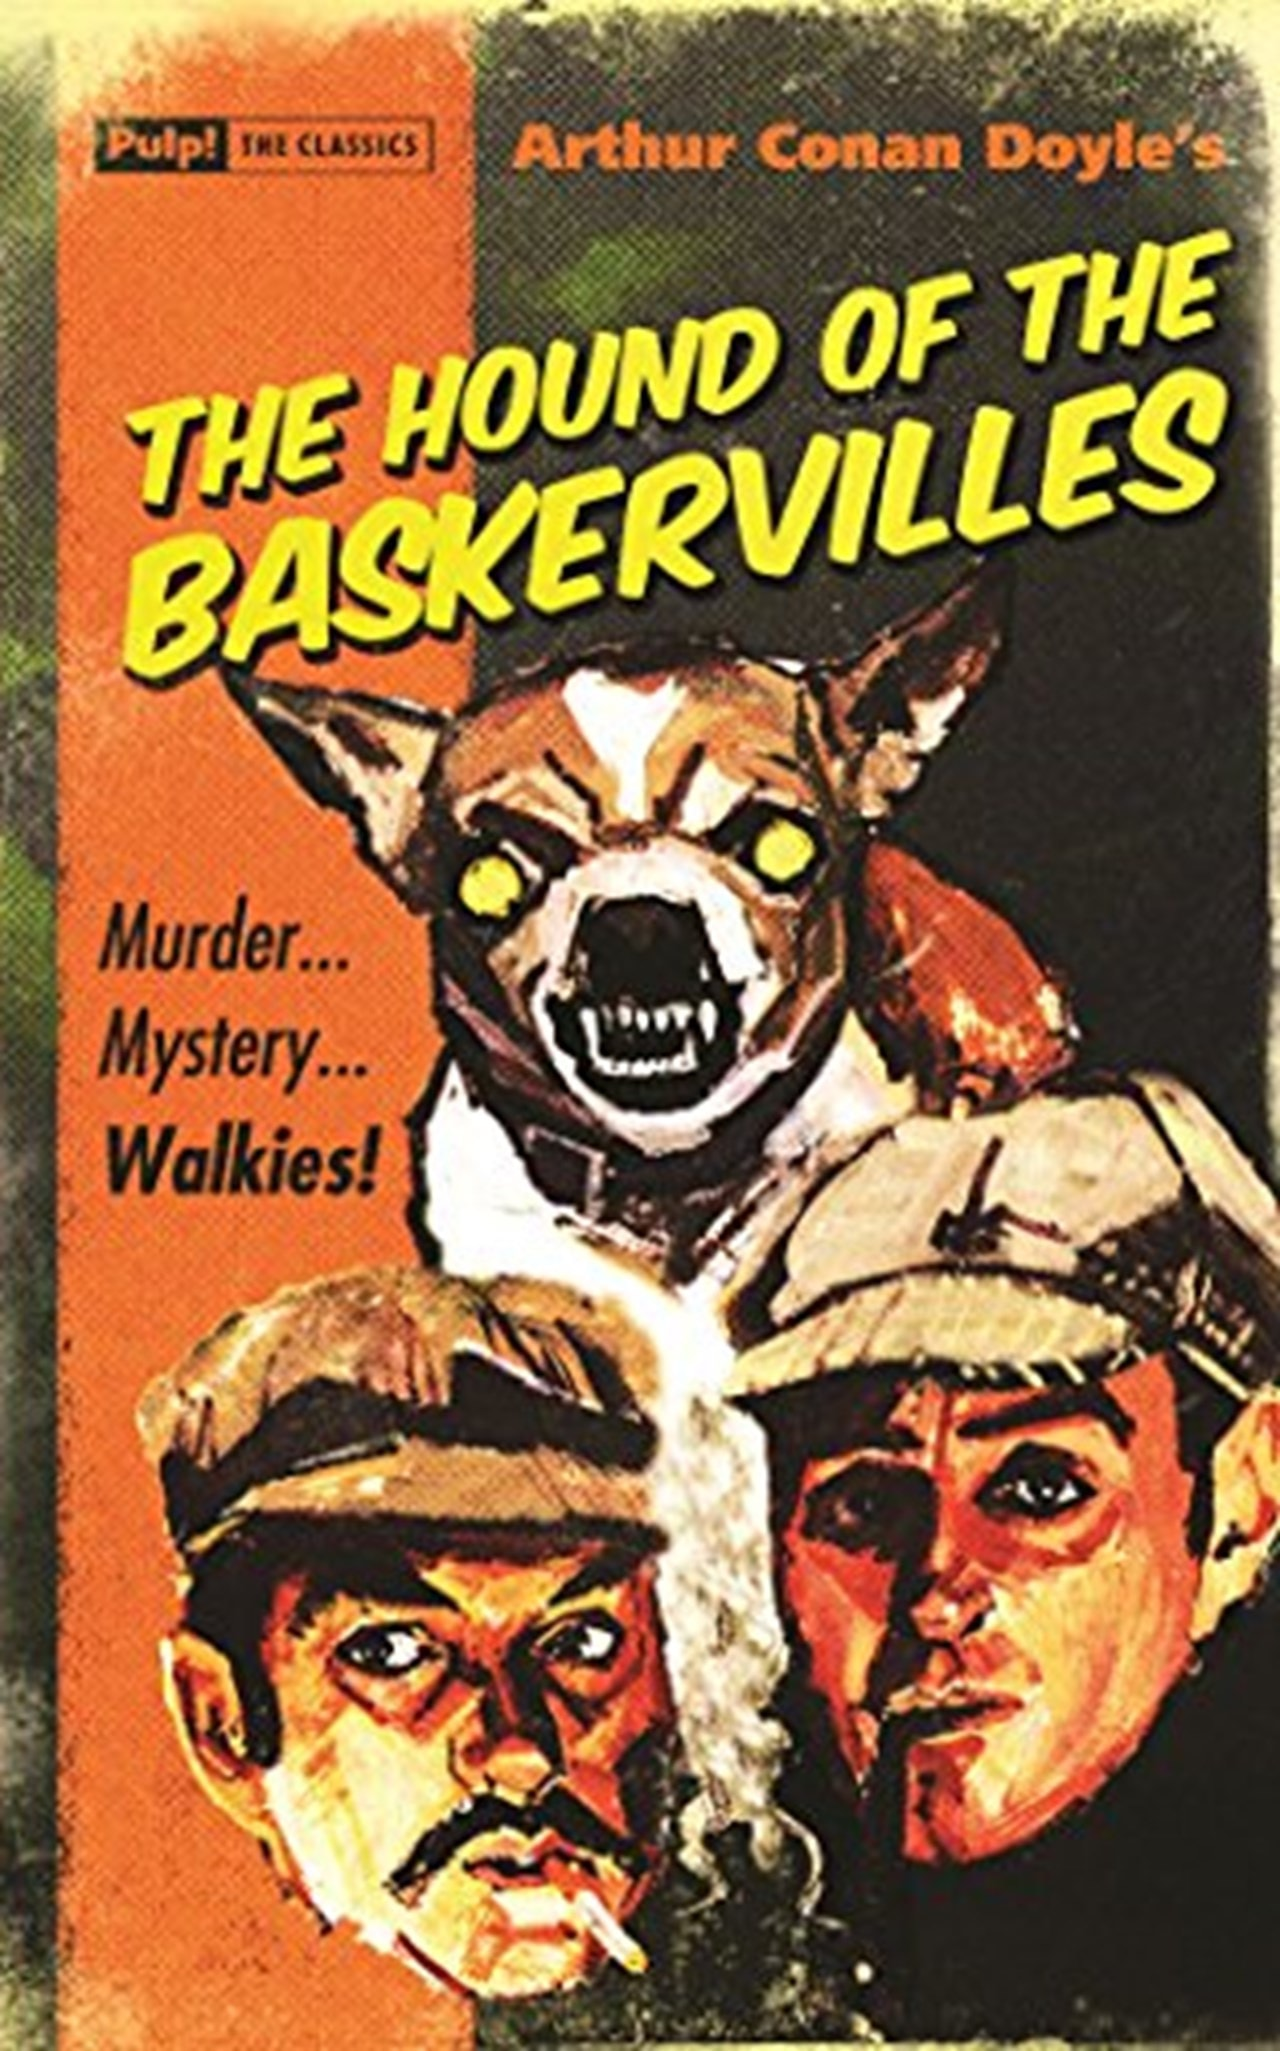 The Hound Of The Baskervilles - 1